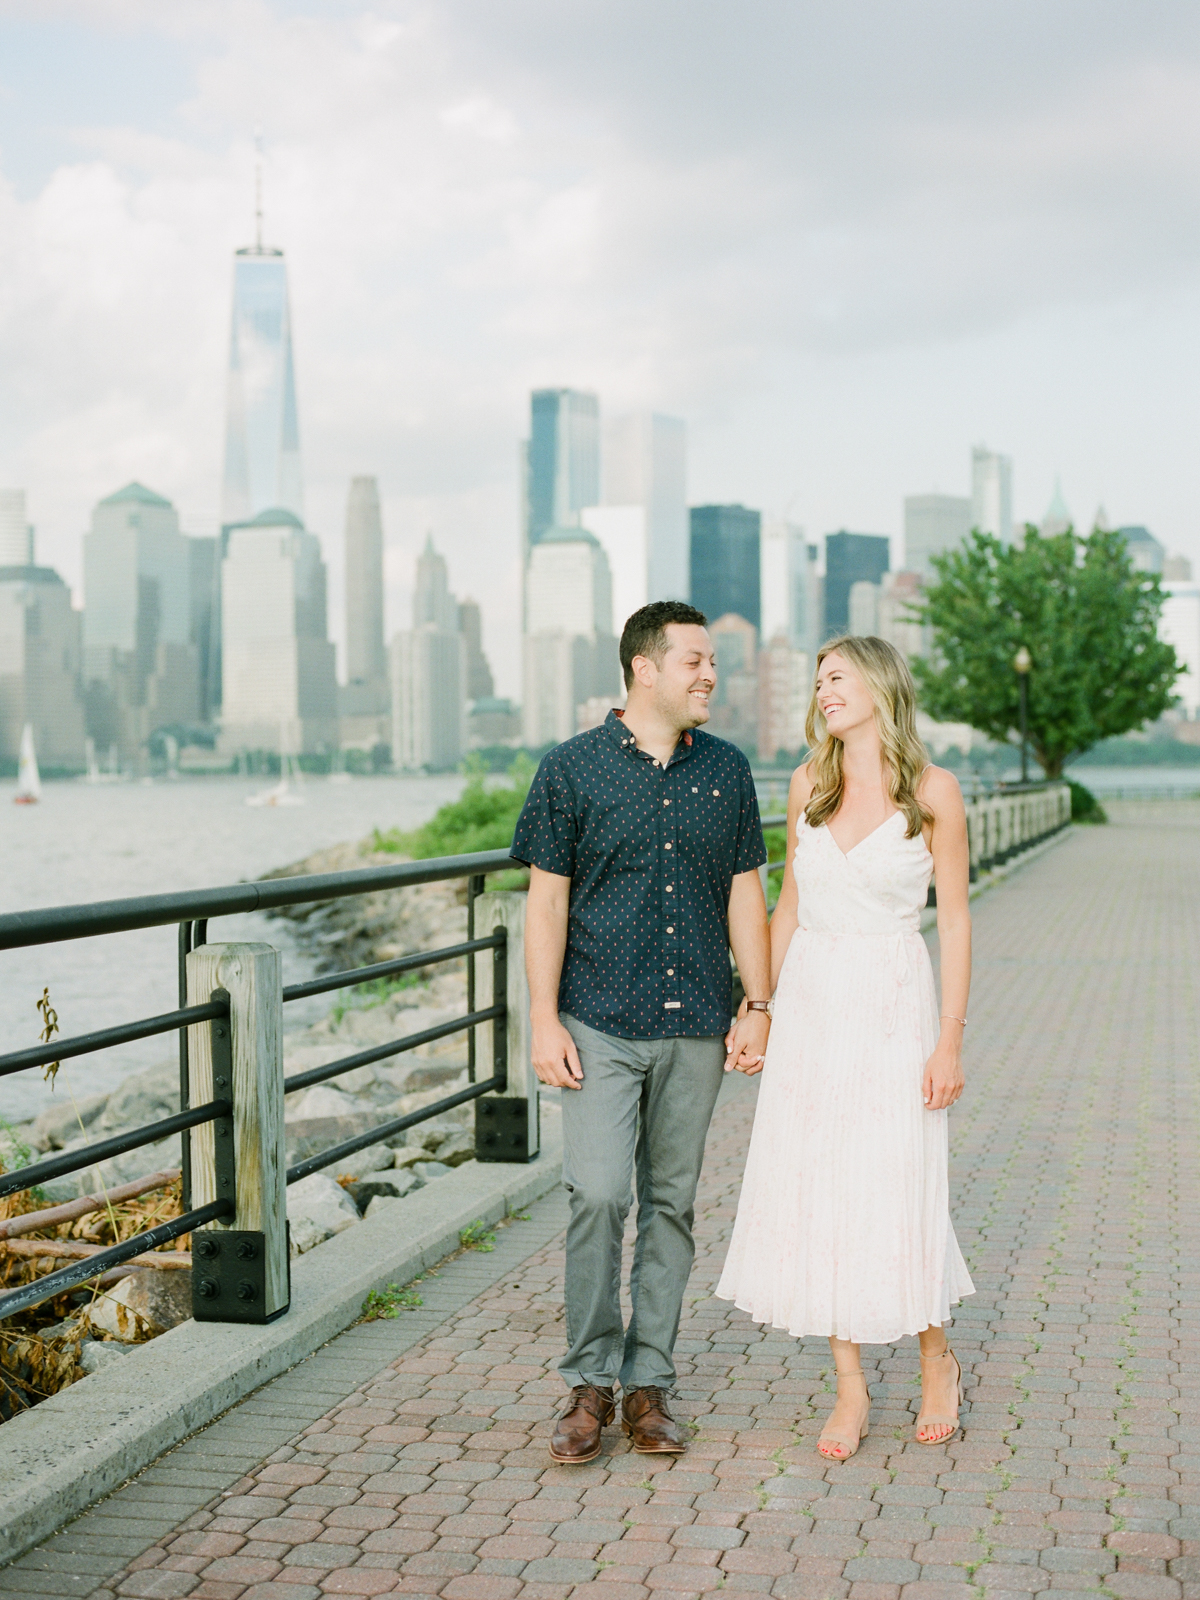 NYC-skyline-engagement-session-by-Tanya Isaeva-6.jpg